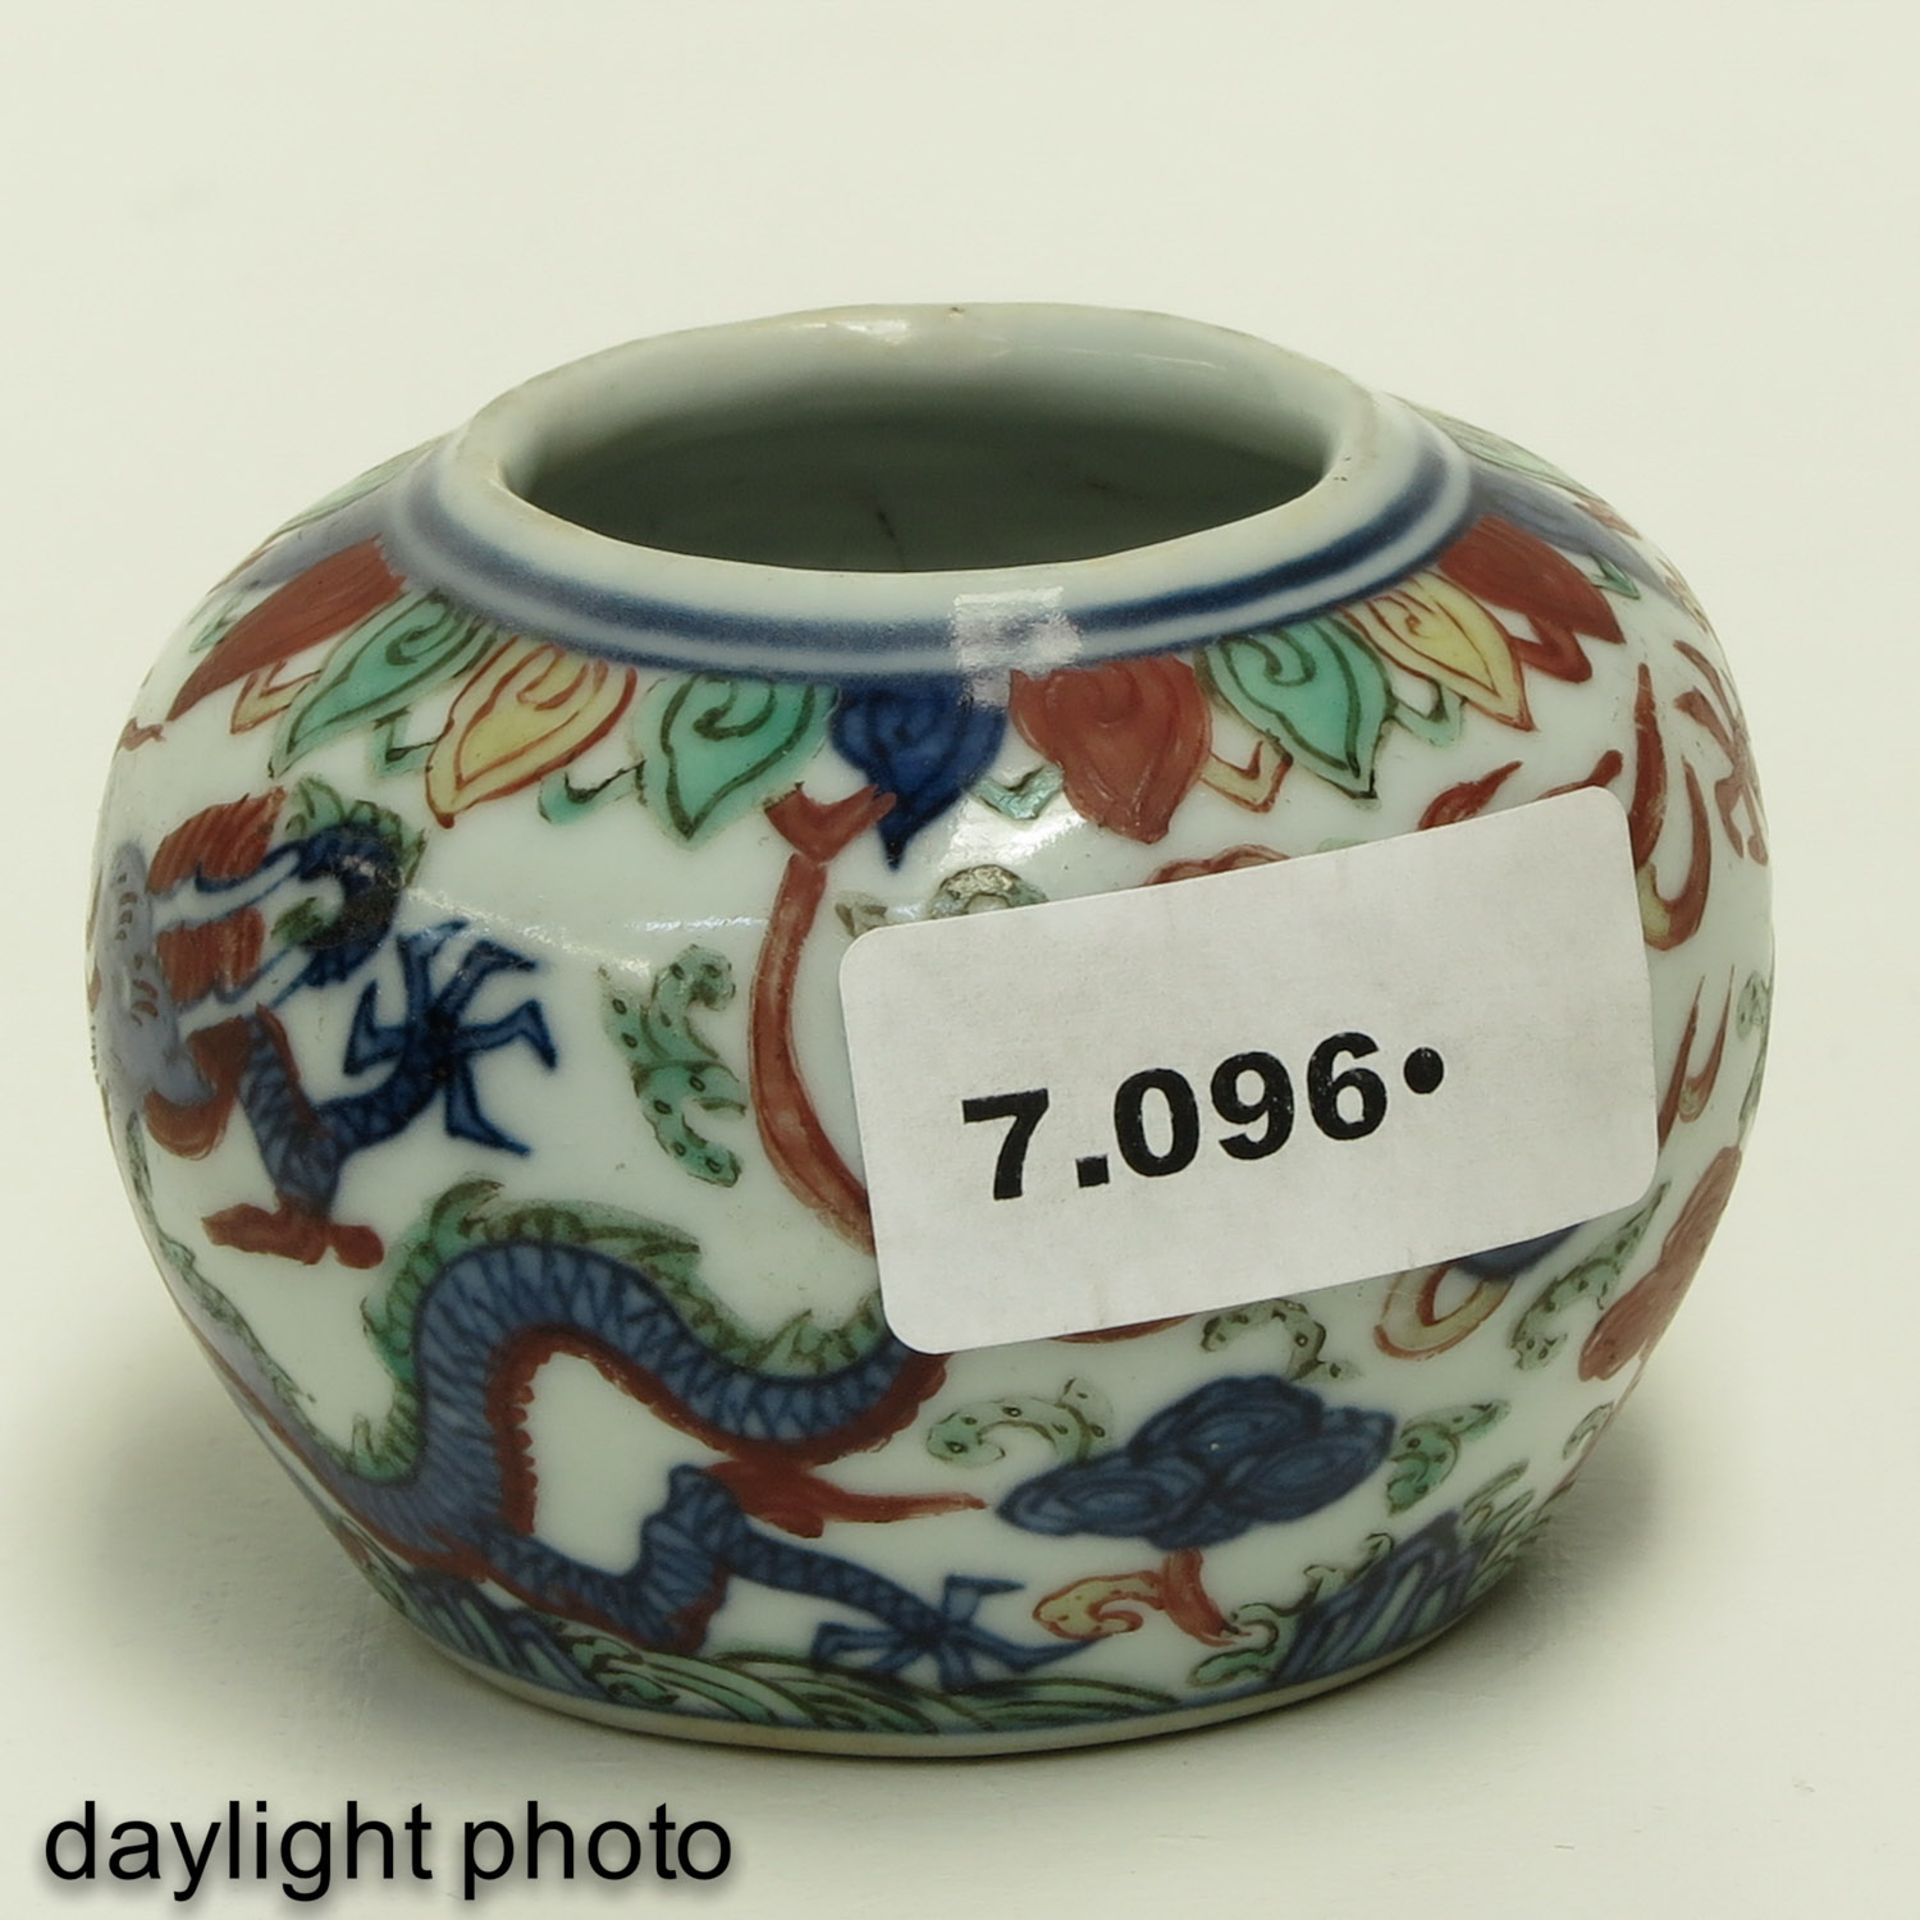 Los 7096 - A Small Polychrome Brush Washer